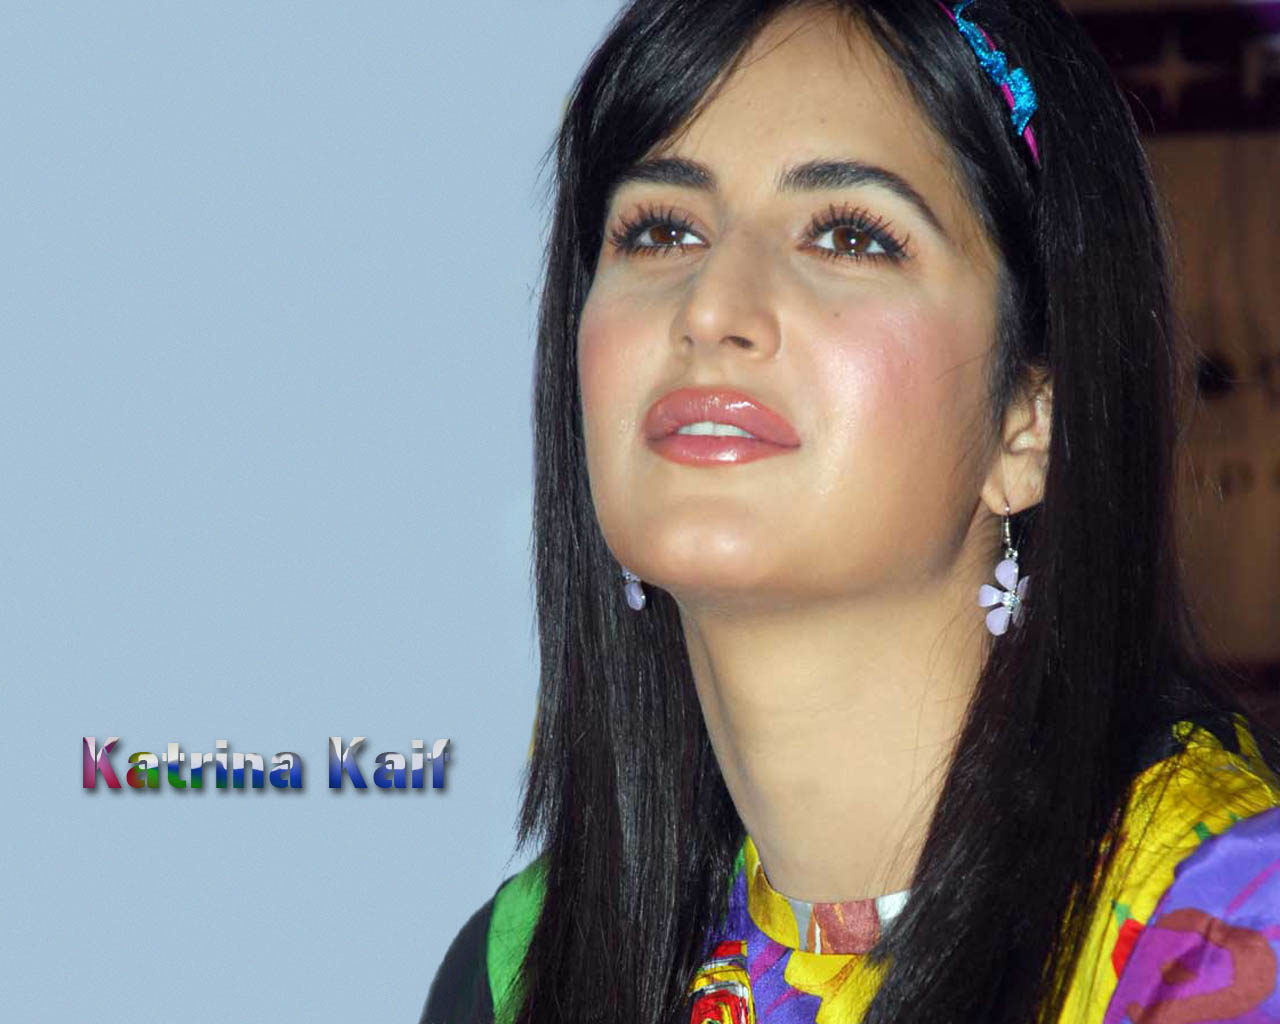 Katrina Kaif Latest Wallpapers, Katrina Kaif Cute Images -5317